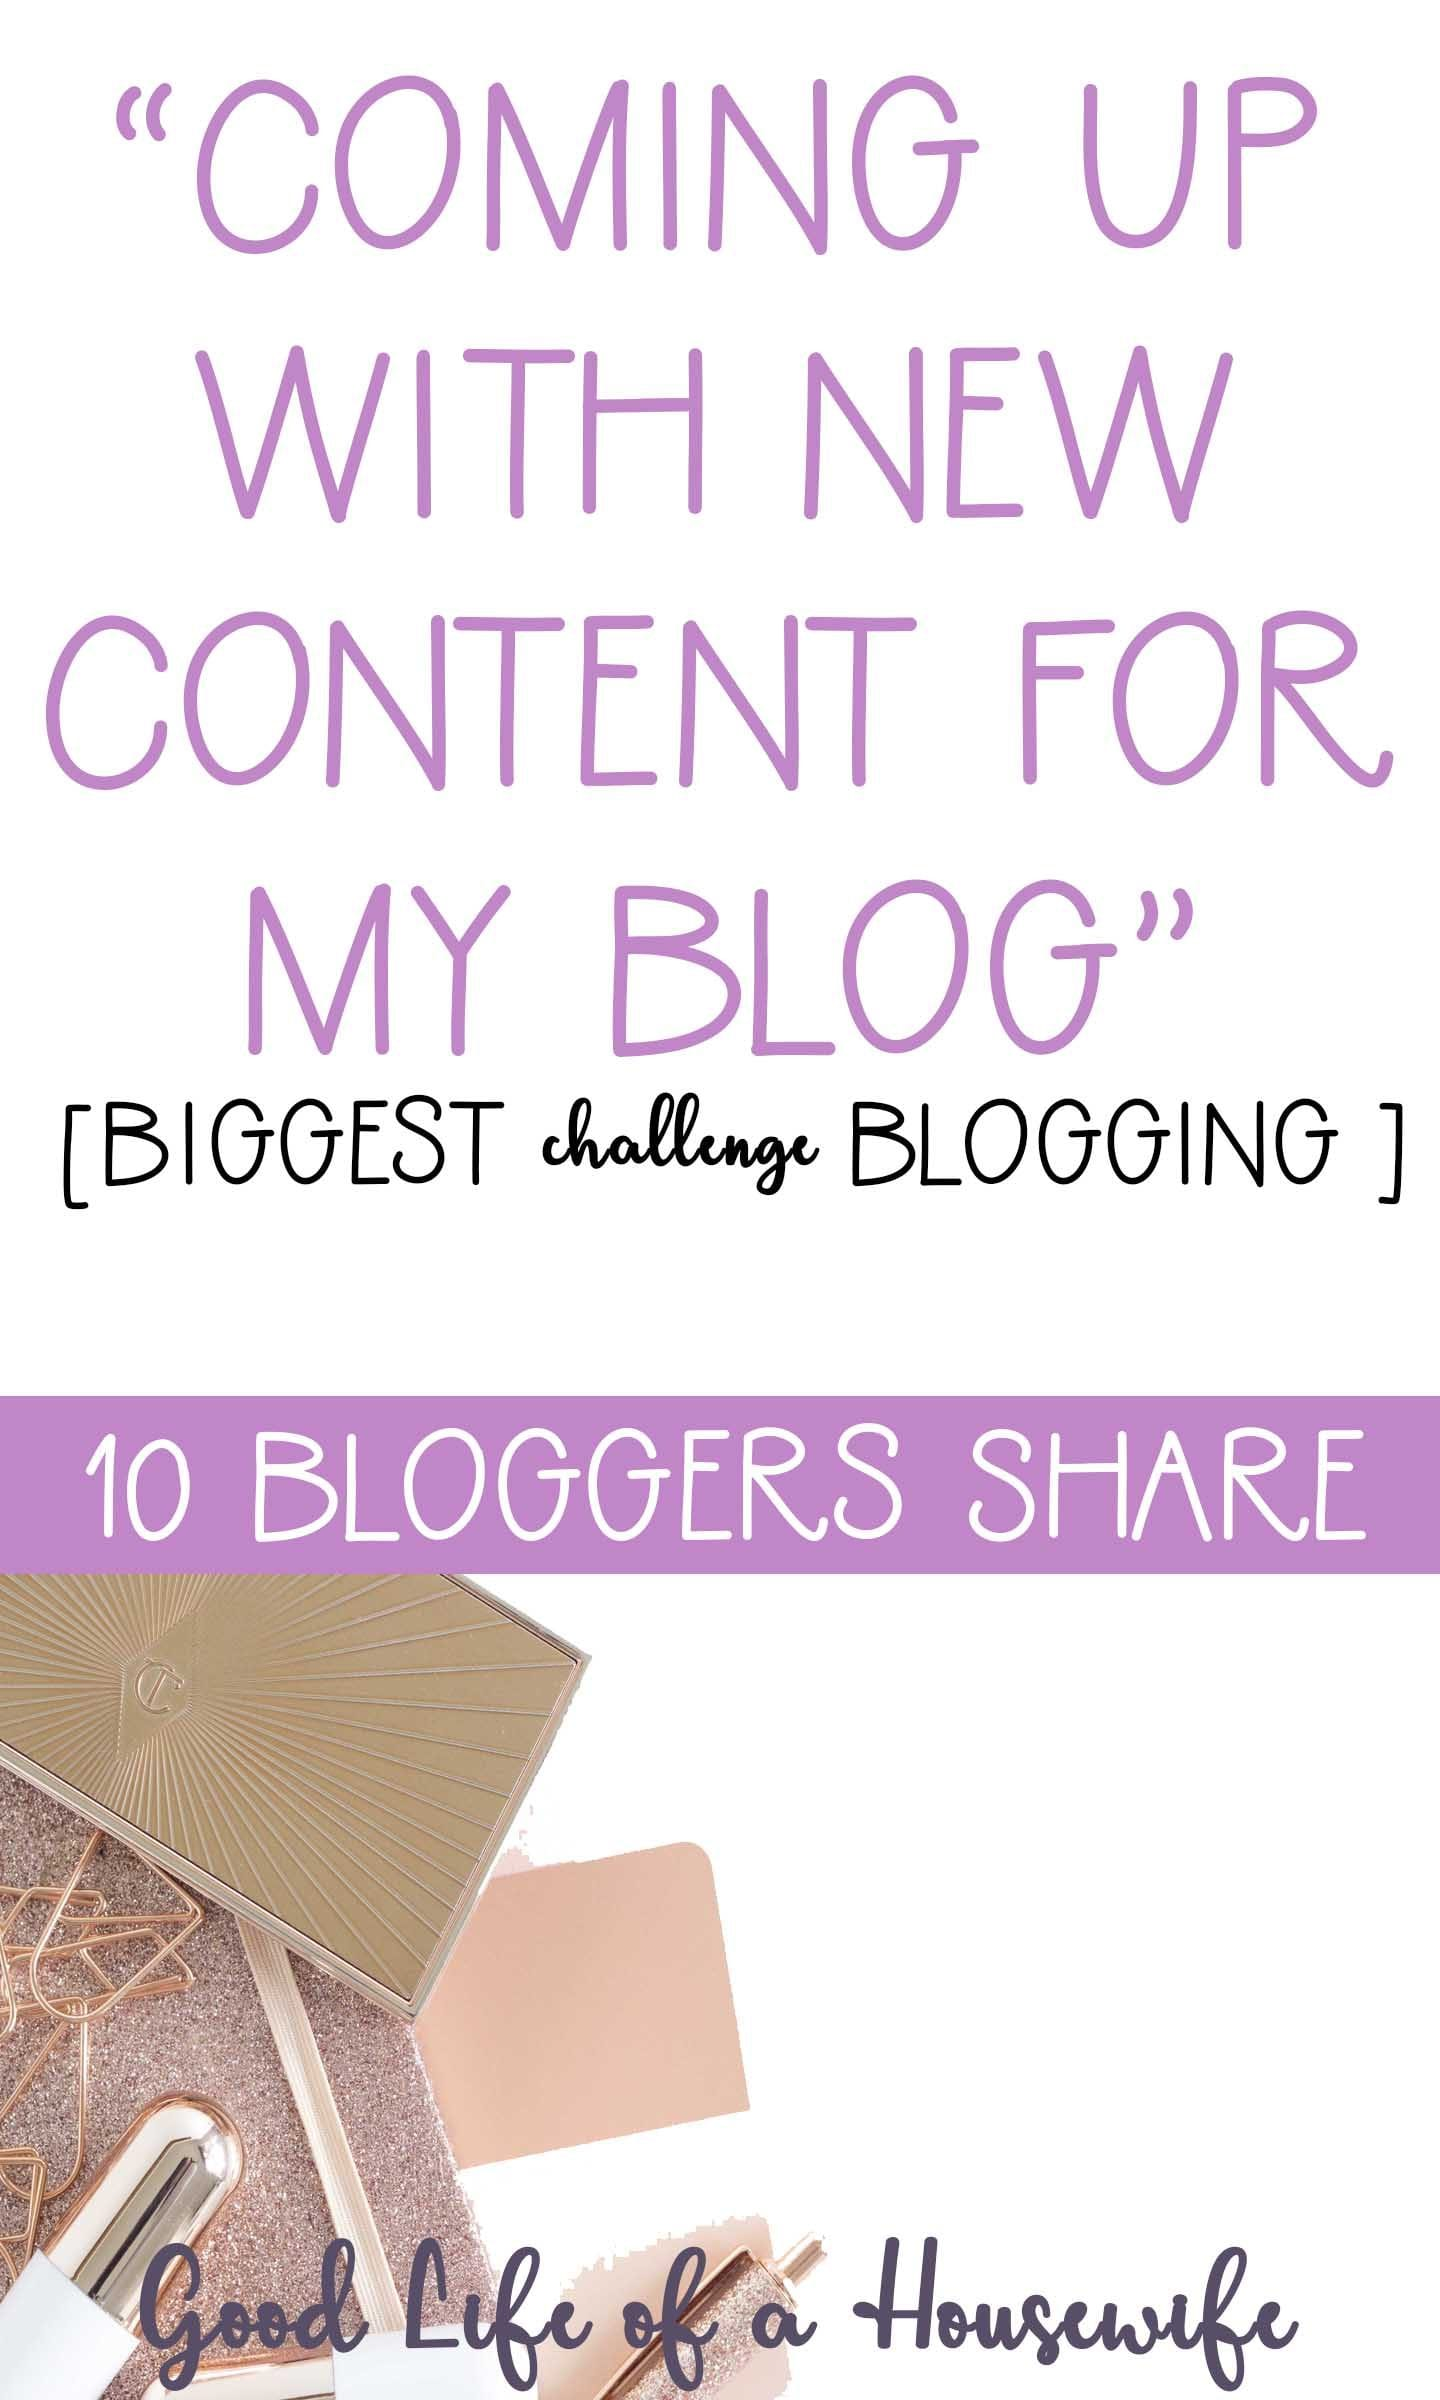 10 bloggers share their biggest challenge blogging. The challenge of coming up with new content for my blog.